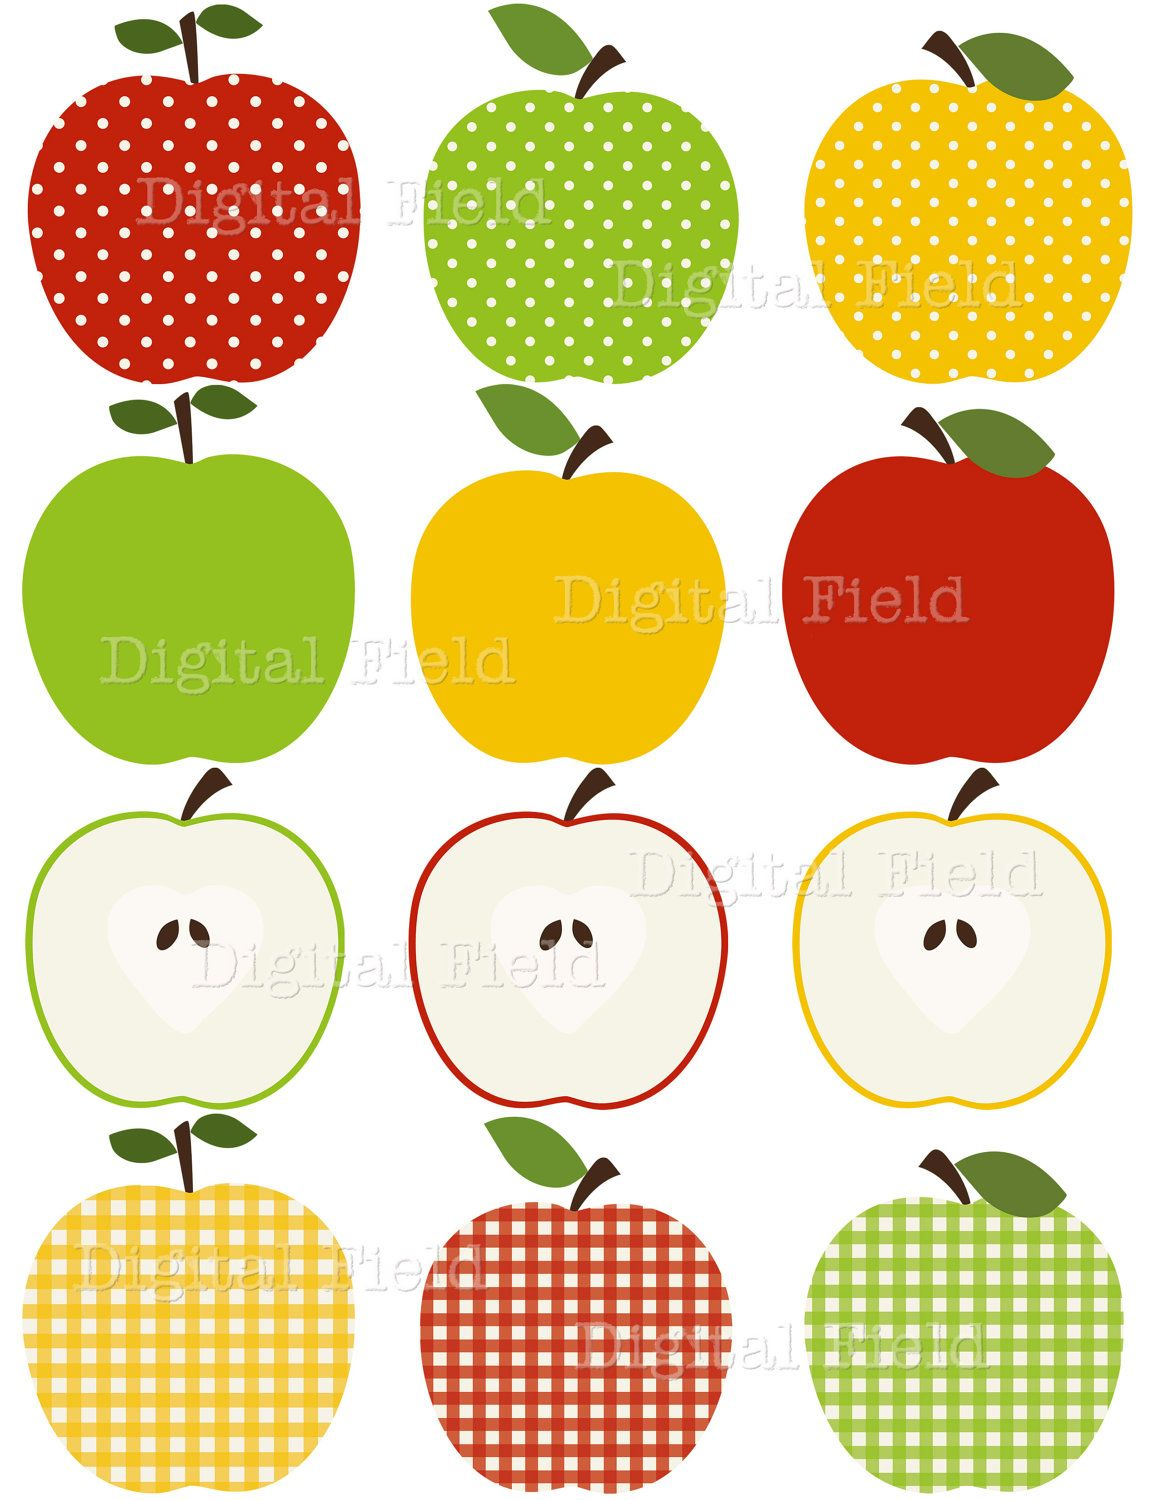 small resolution of apple clip art set red green and yellow patterned digital clipart personal and small commercial use 2 50 via etsy